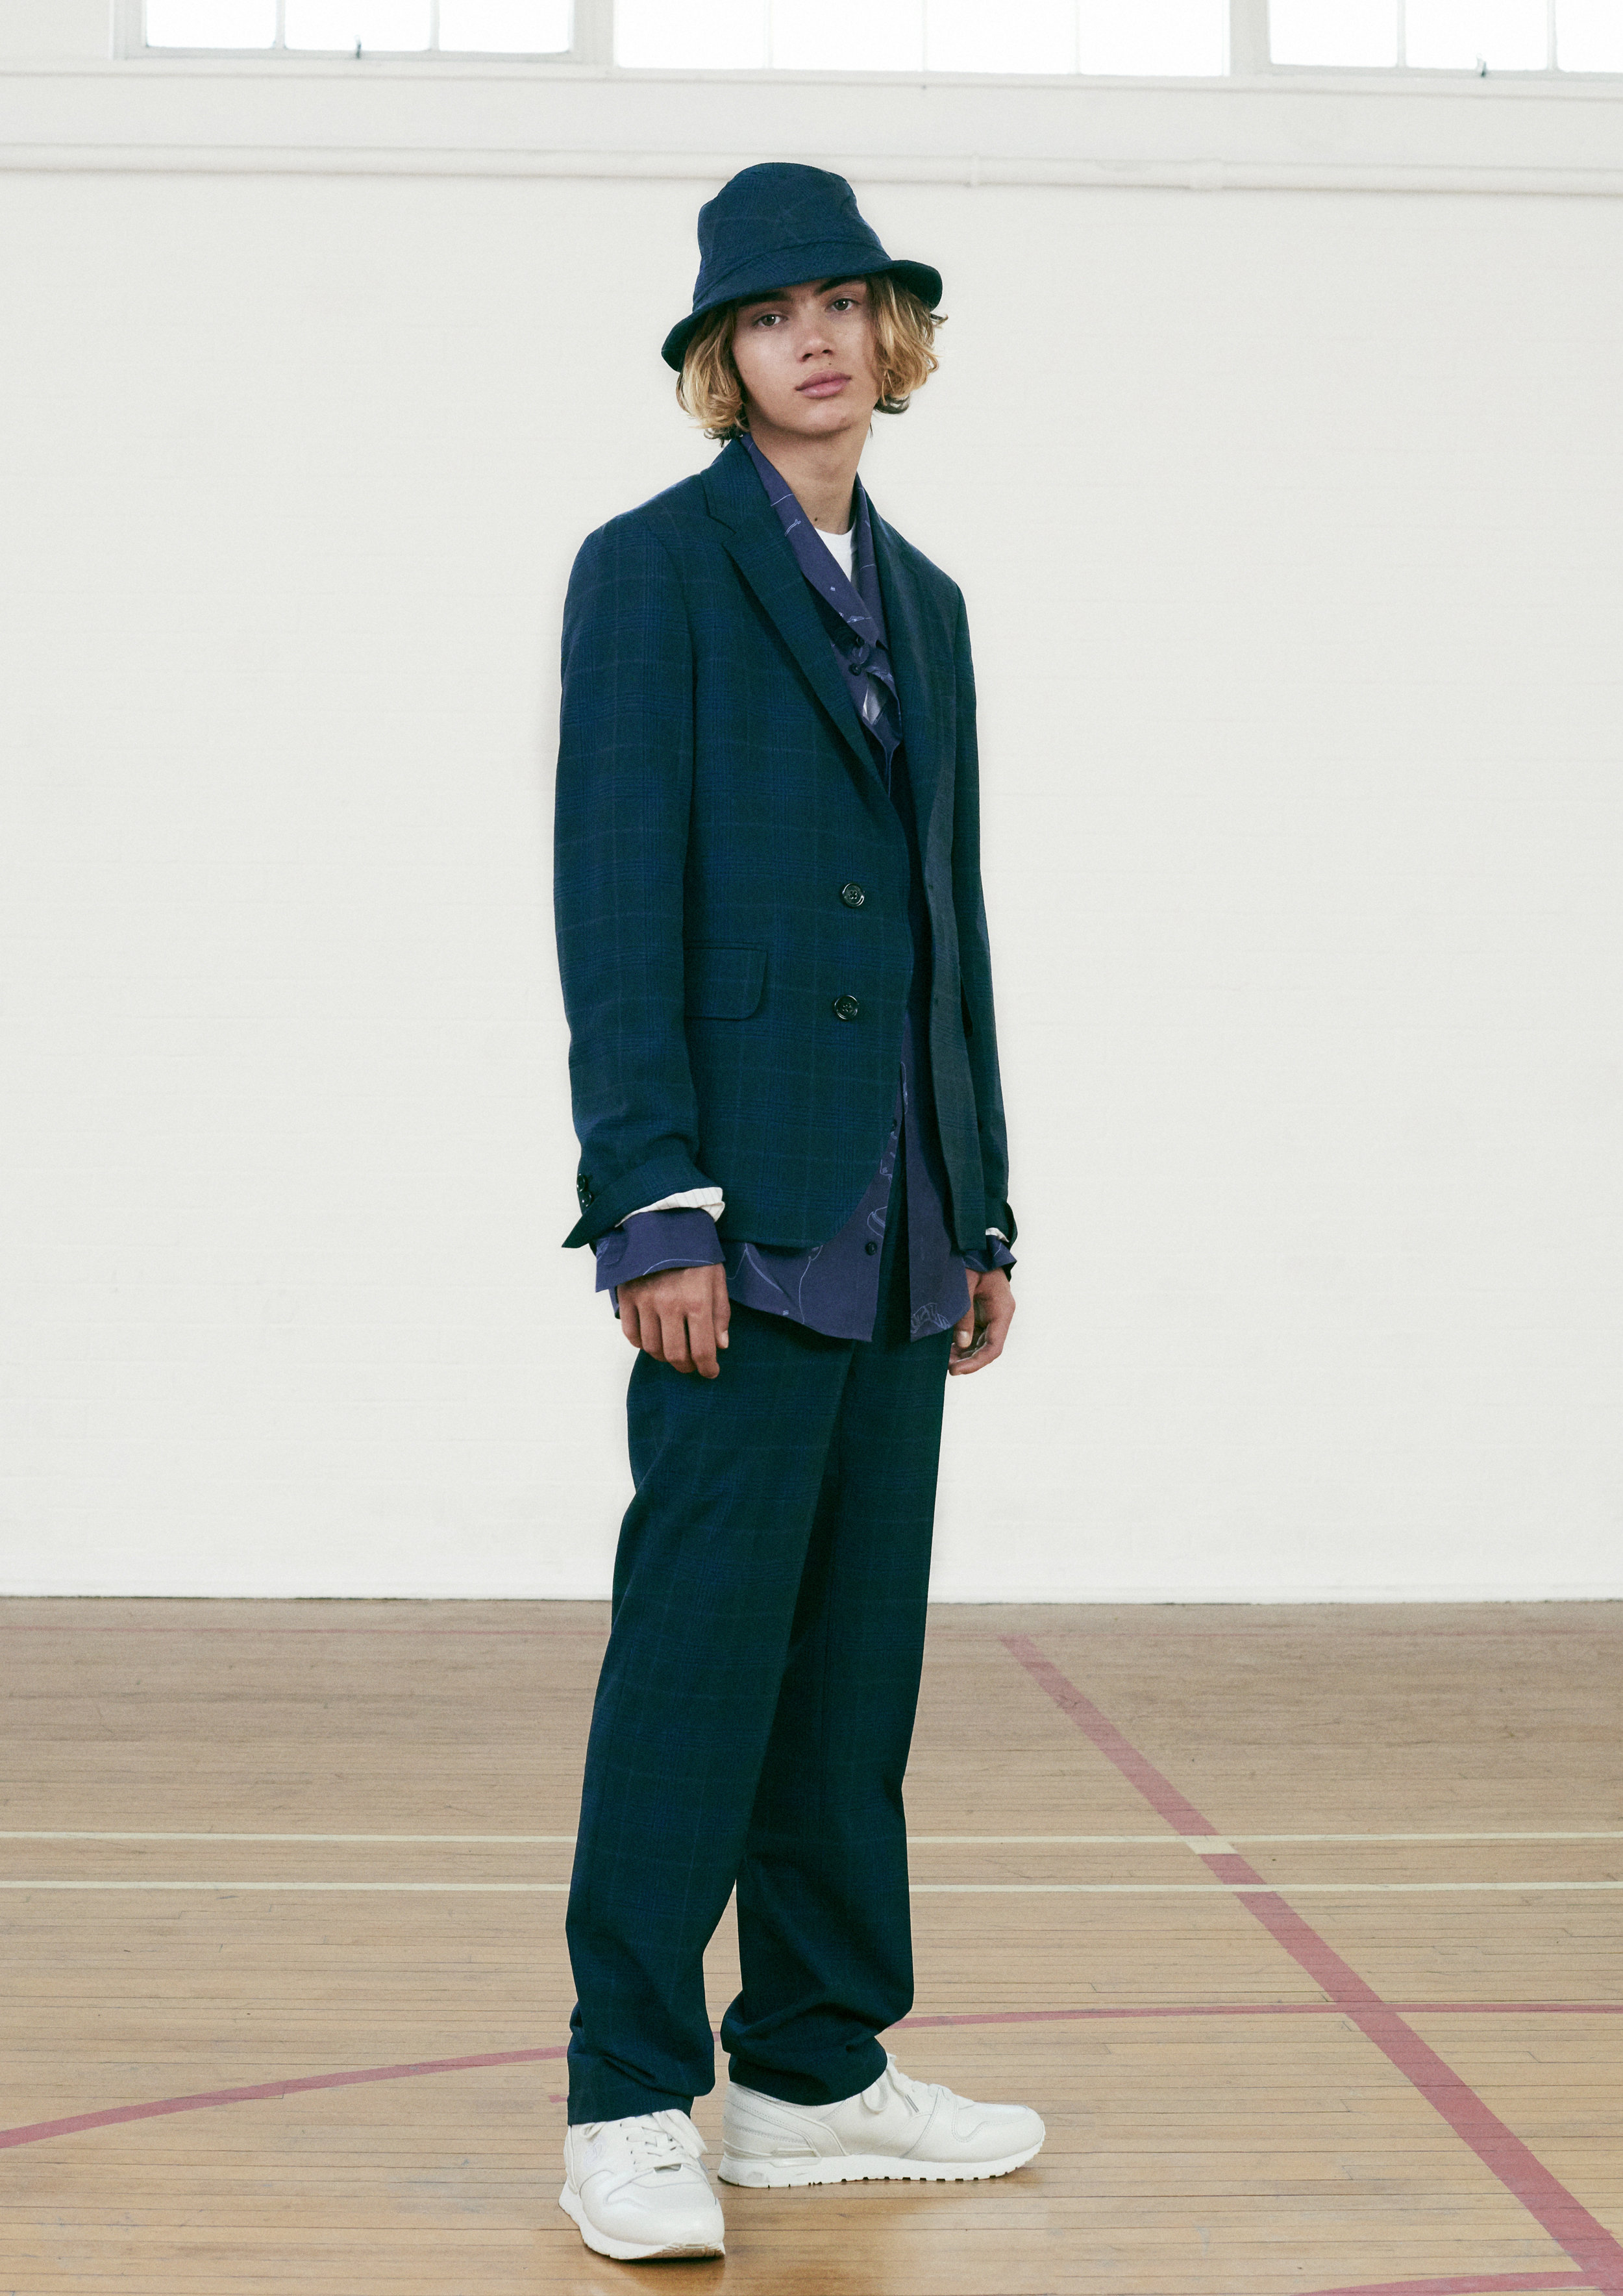 Band of Outsiders SS19 3.jpg